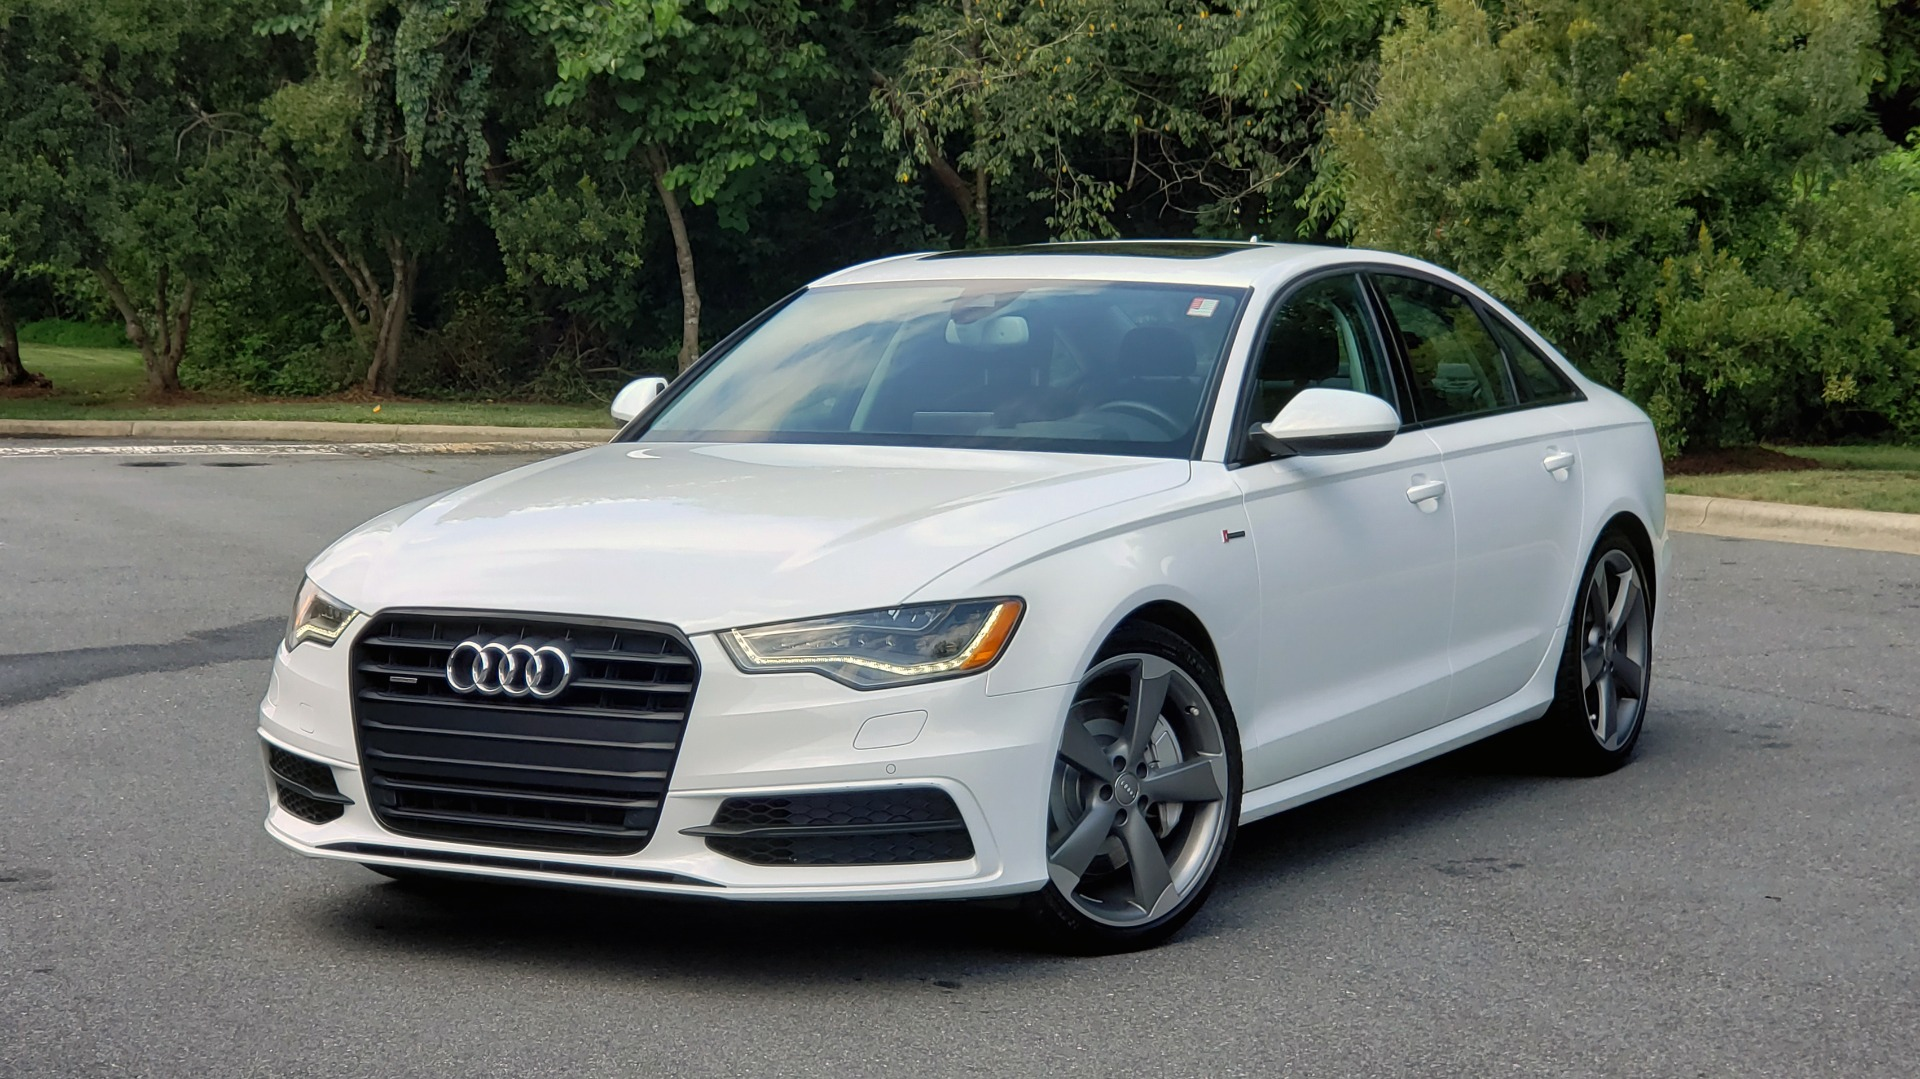 Used 2015 Audi A6 3.0T PRESTIGE / BLACK OPTIC / NAV / BOSE / SUNROOF / REARVIEW for sale Sold at Formula Imports in Charlotte NC 28227 1